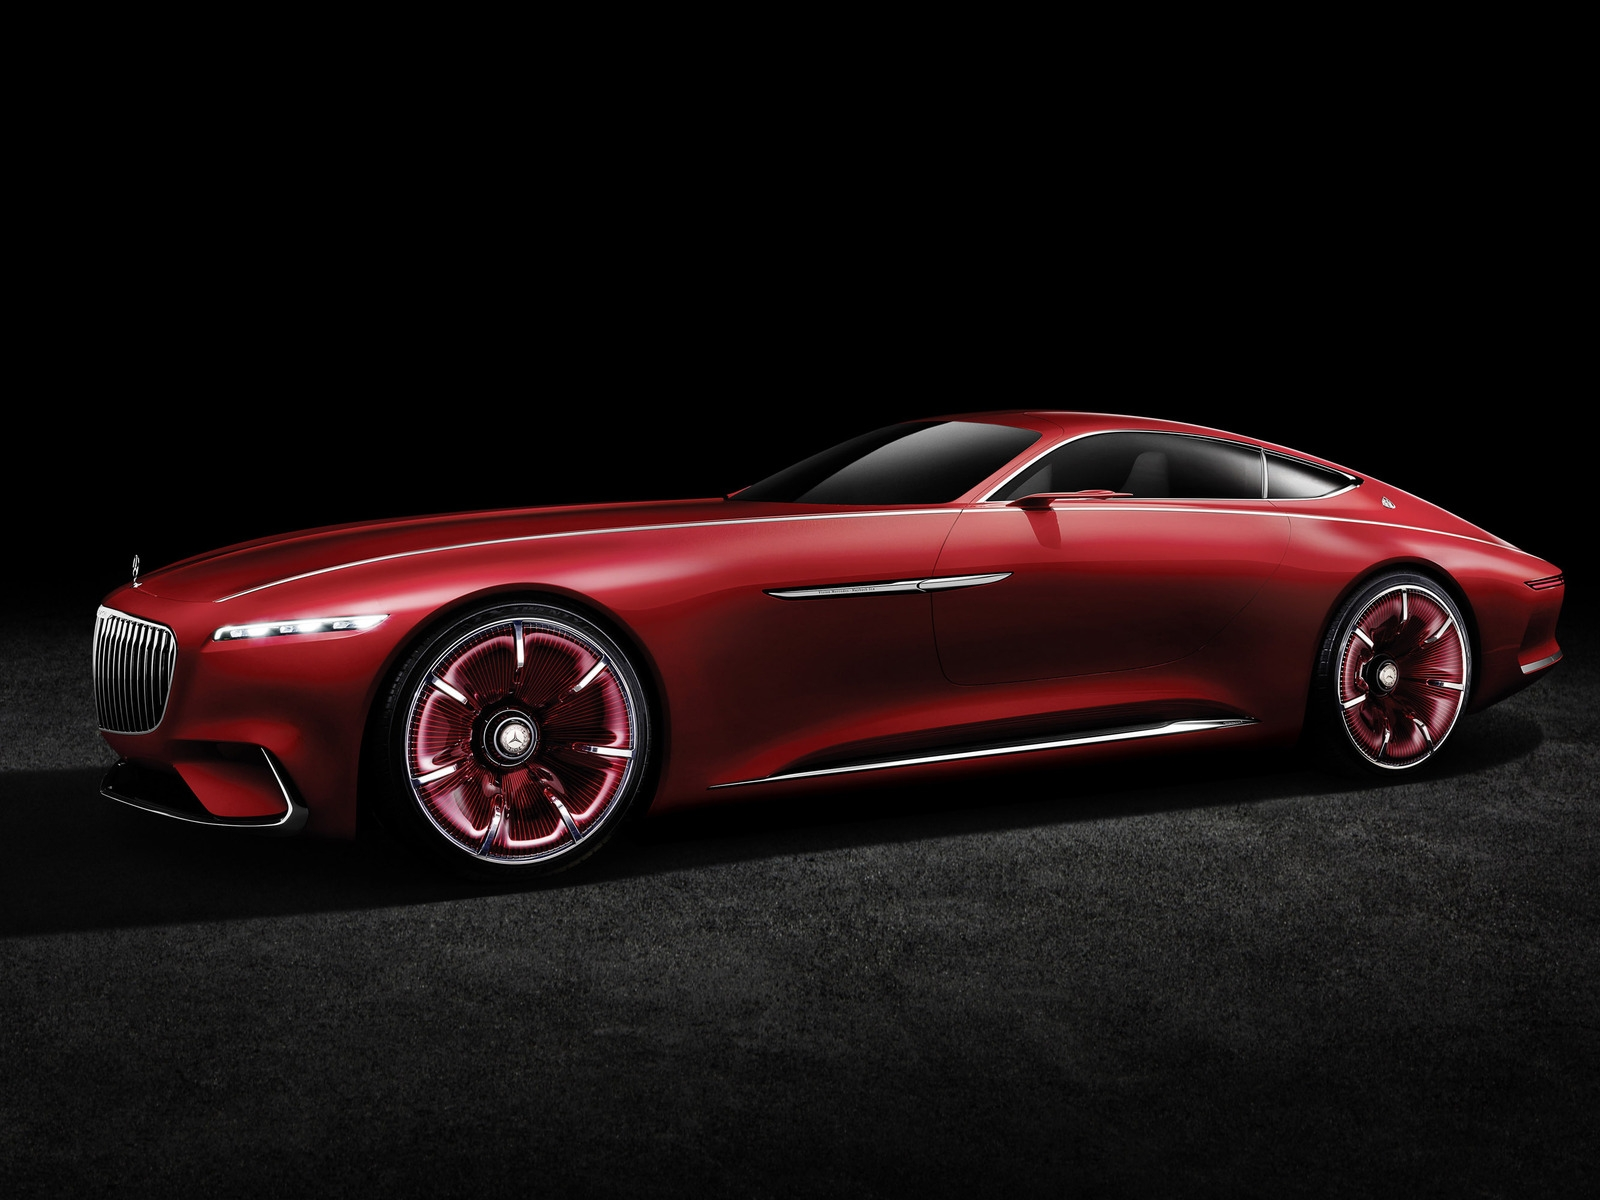 2016 Vision Mercedes Maybach 6 Side View for 1600 x 1200 resolution